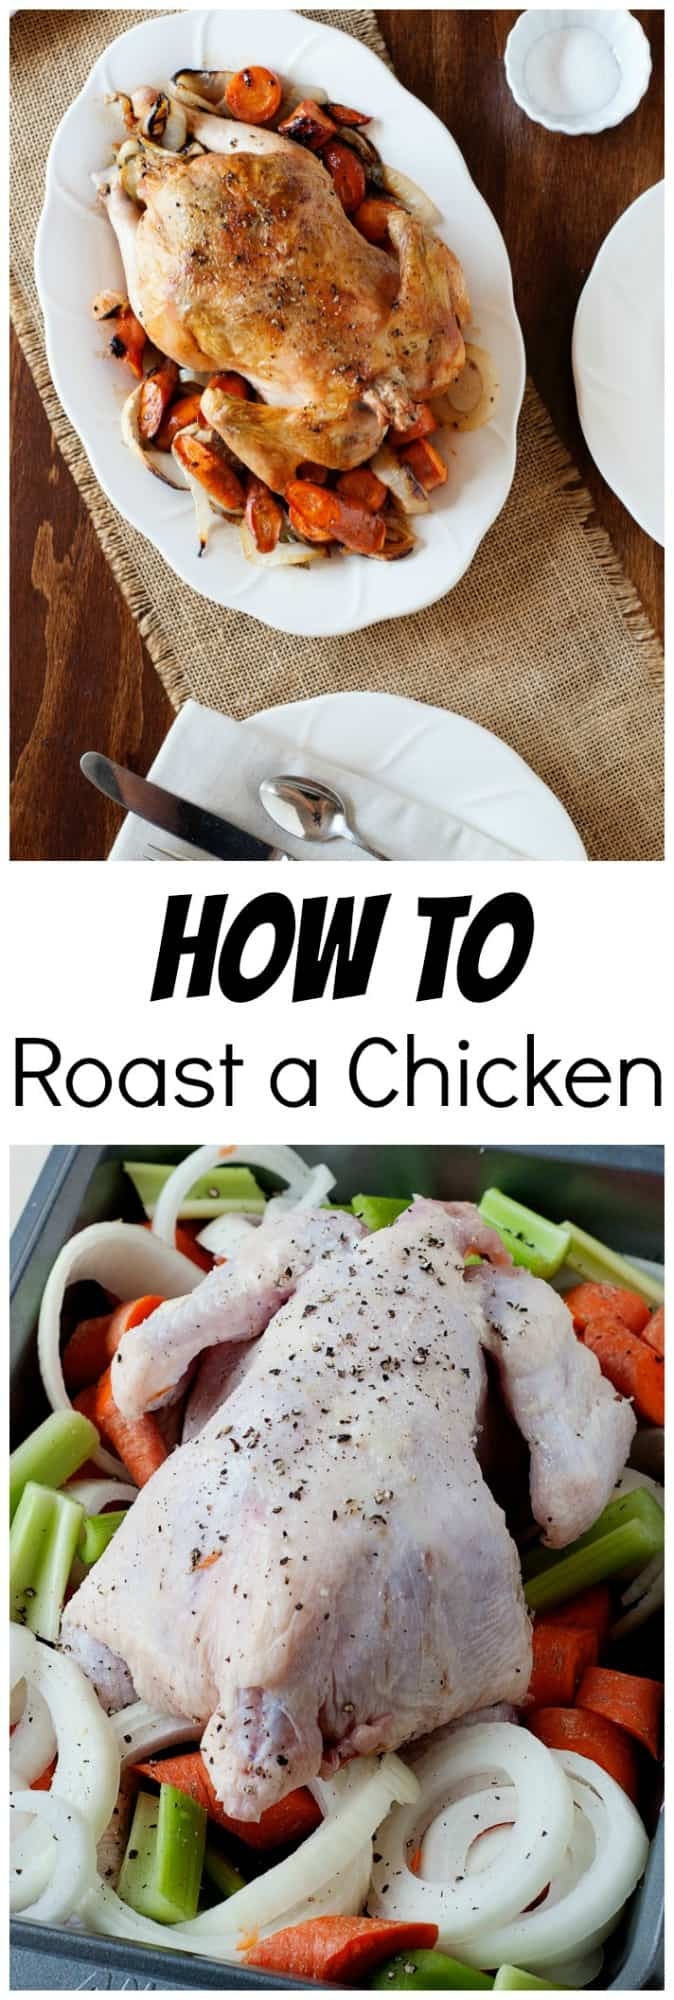 Have you wondered how to roast the perfect chicken so it comes out perfectly juicy and delicious? You have to try this lemon rosemary recipe.